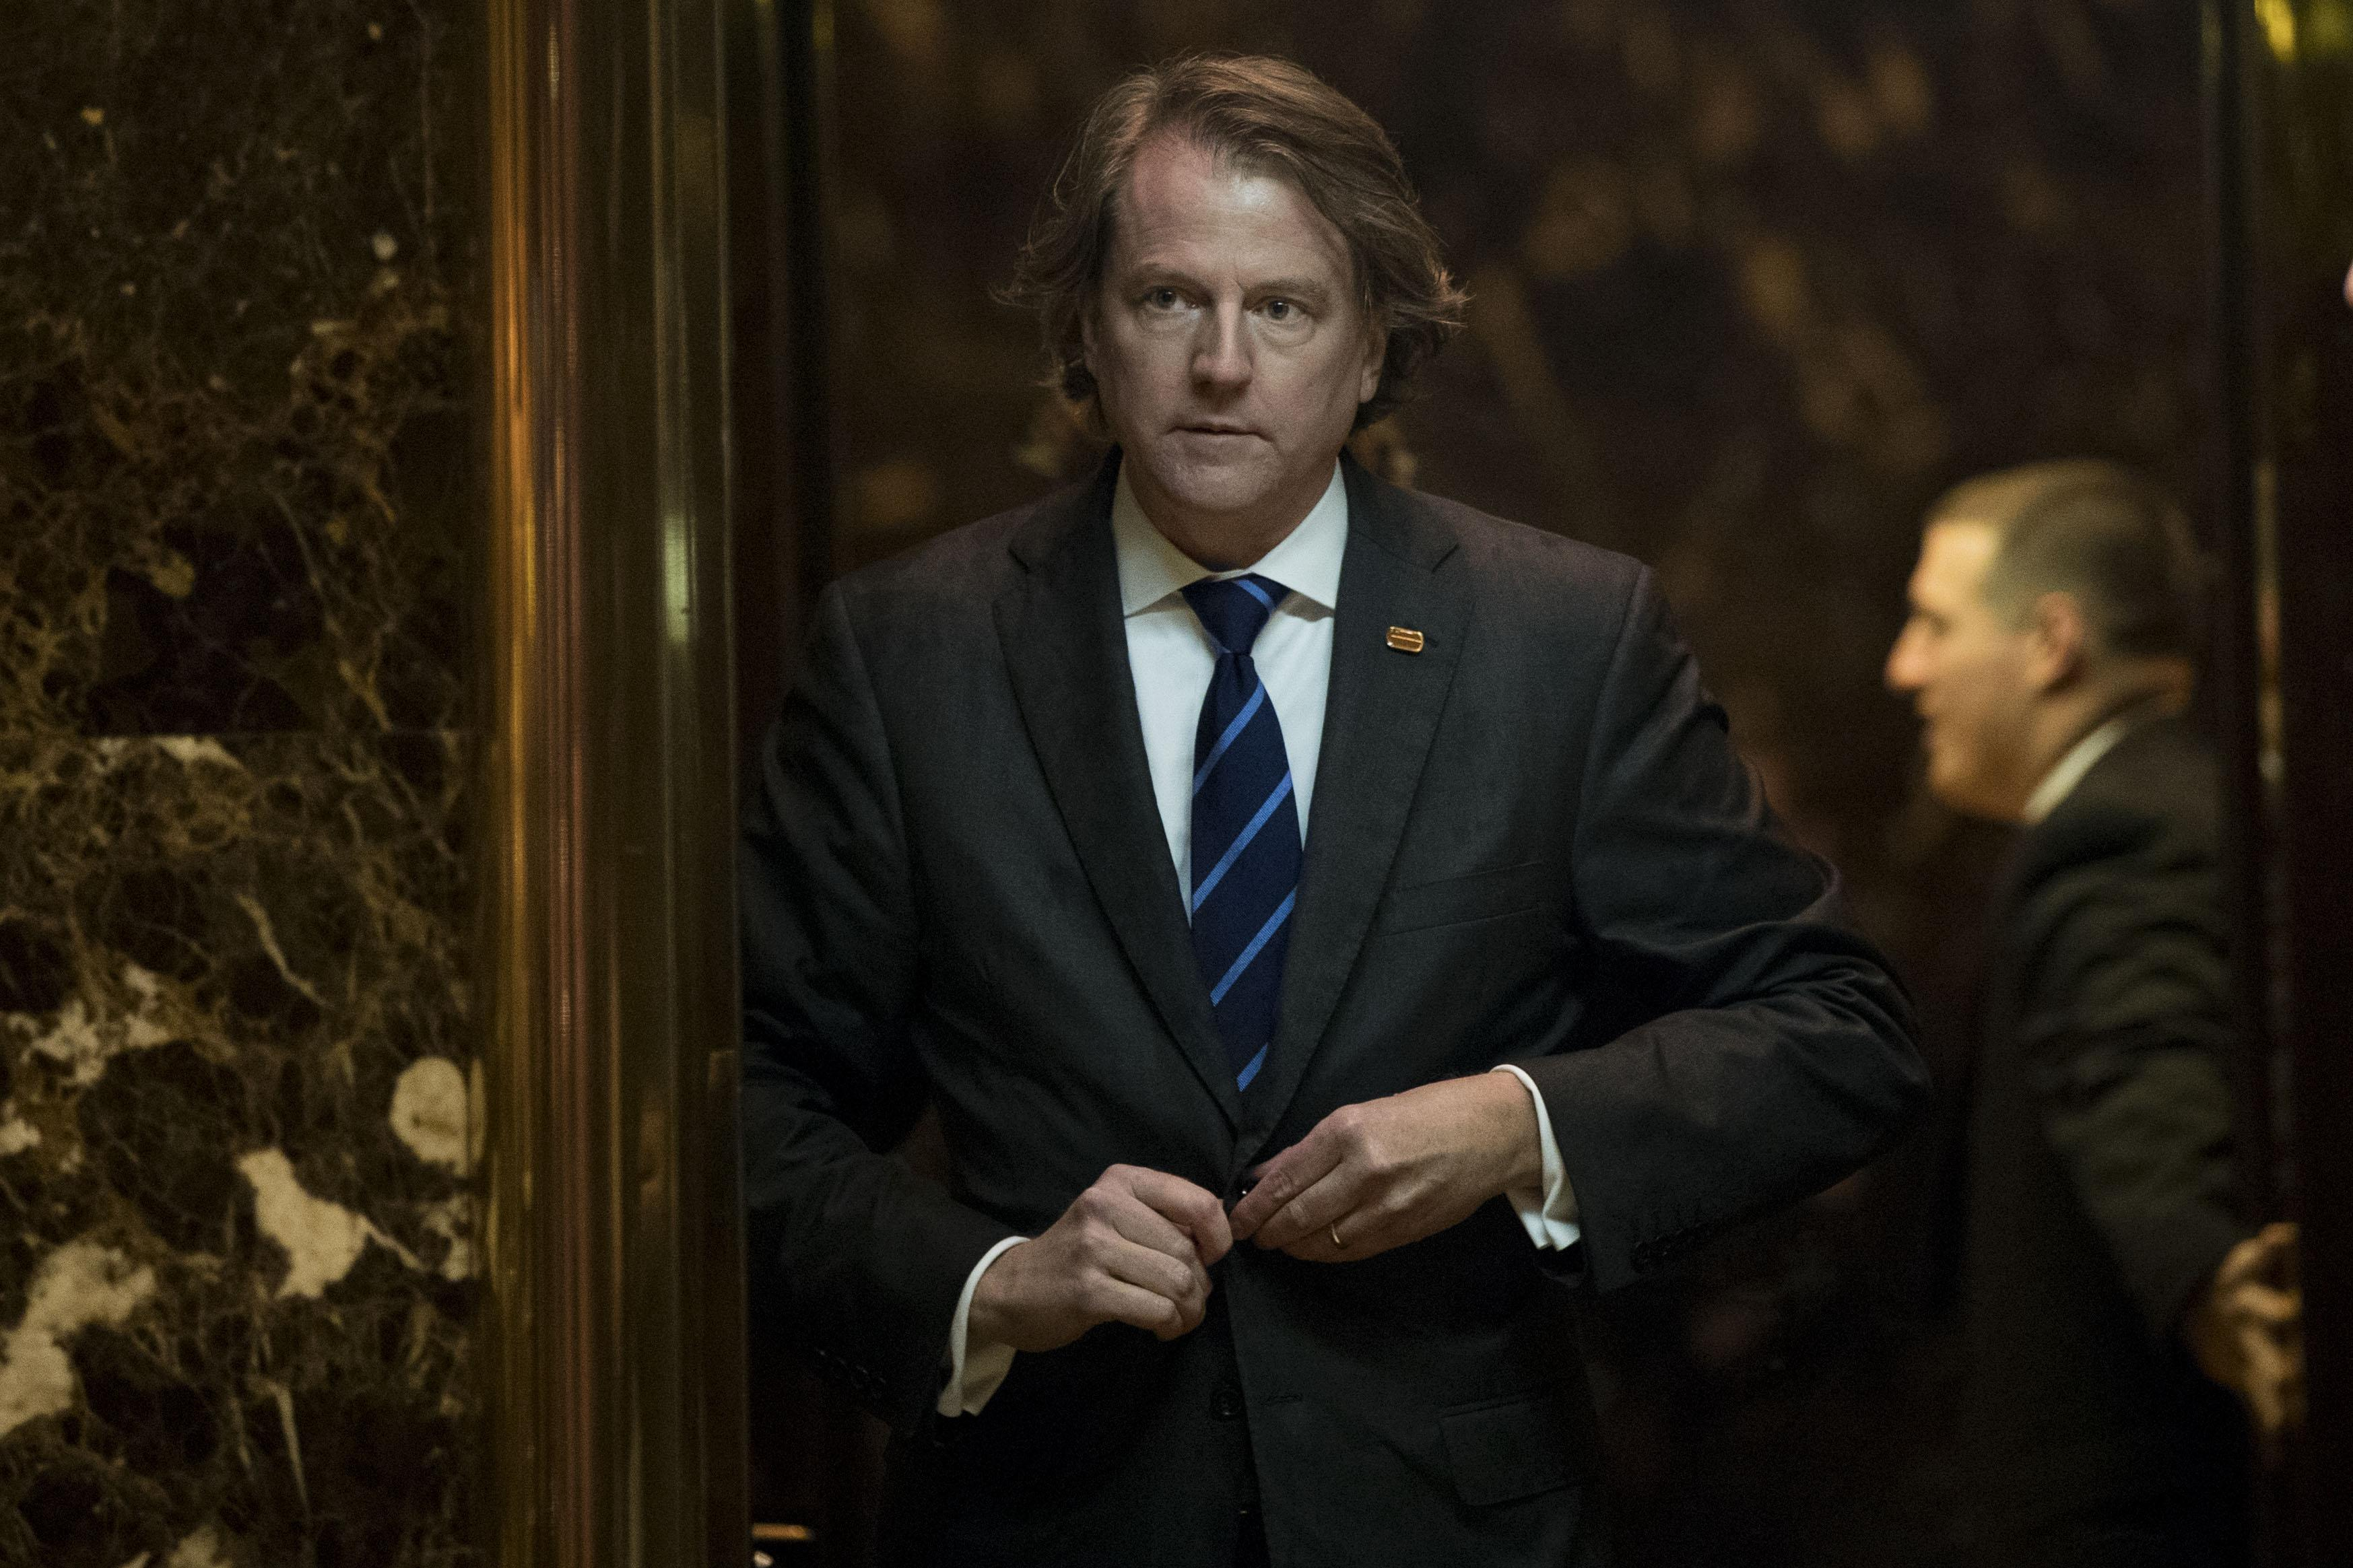 Don McGahn buttons his suit jacket as he gets into an elevator.